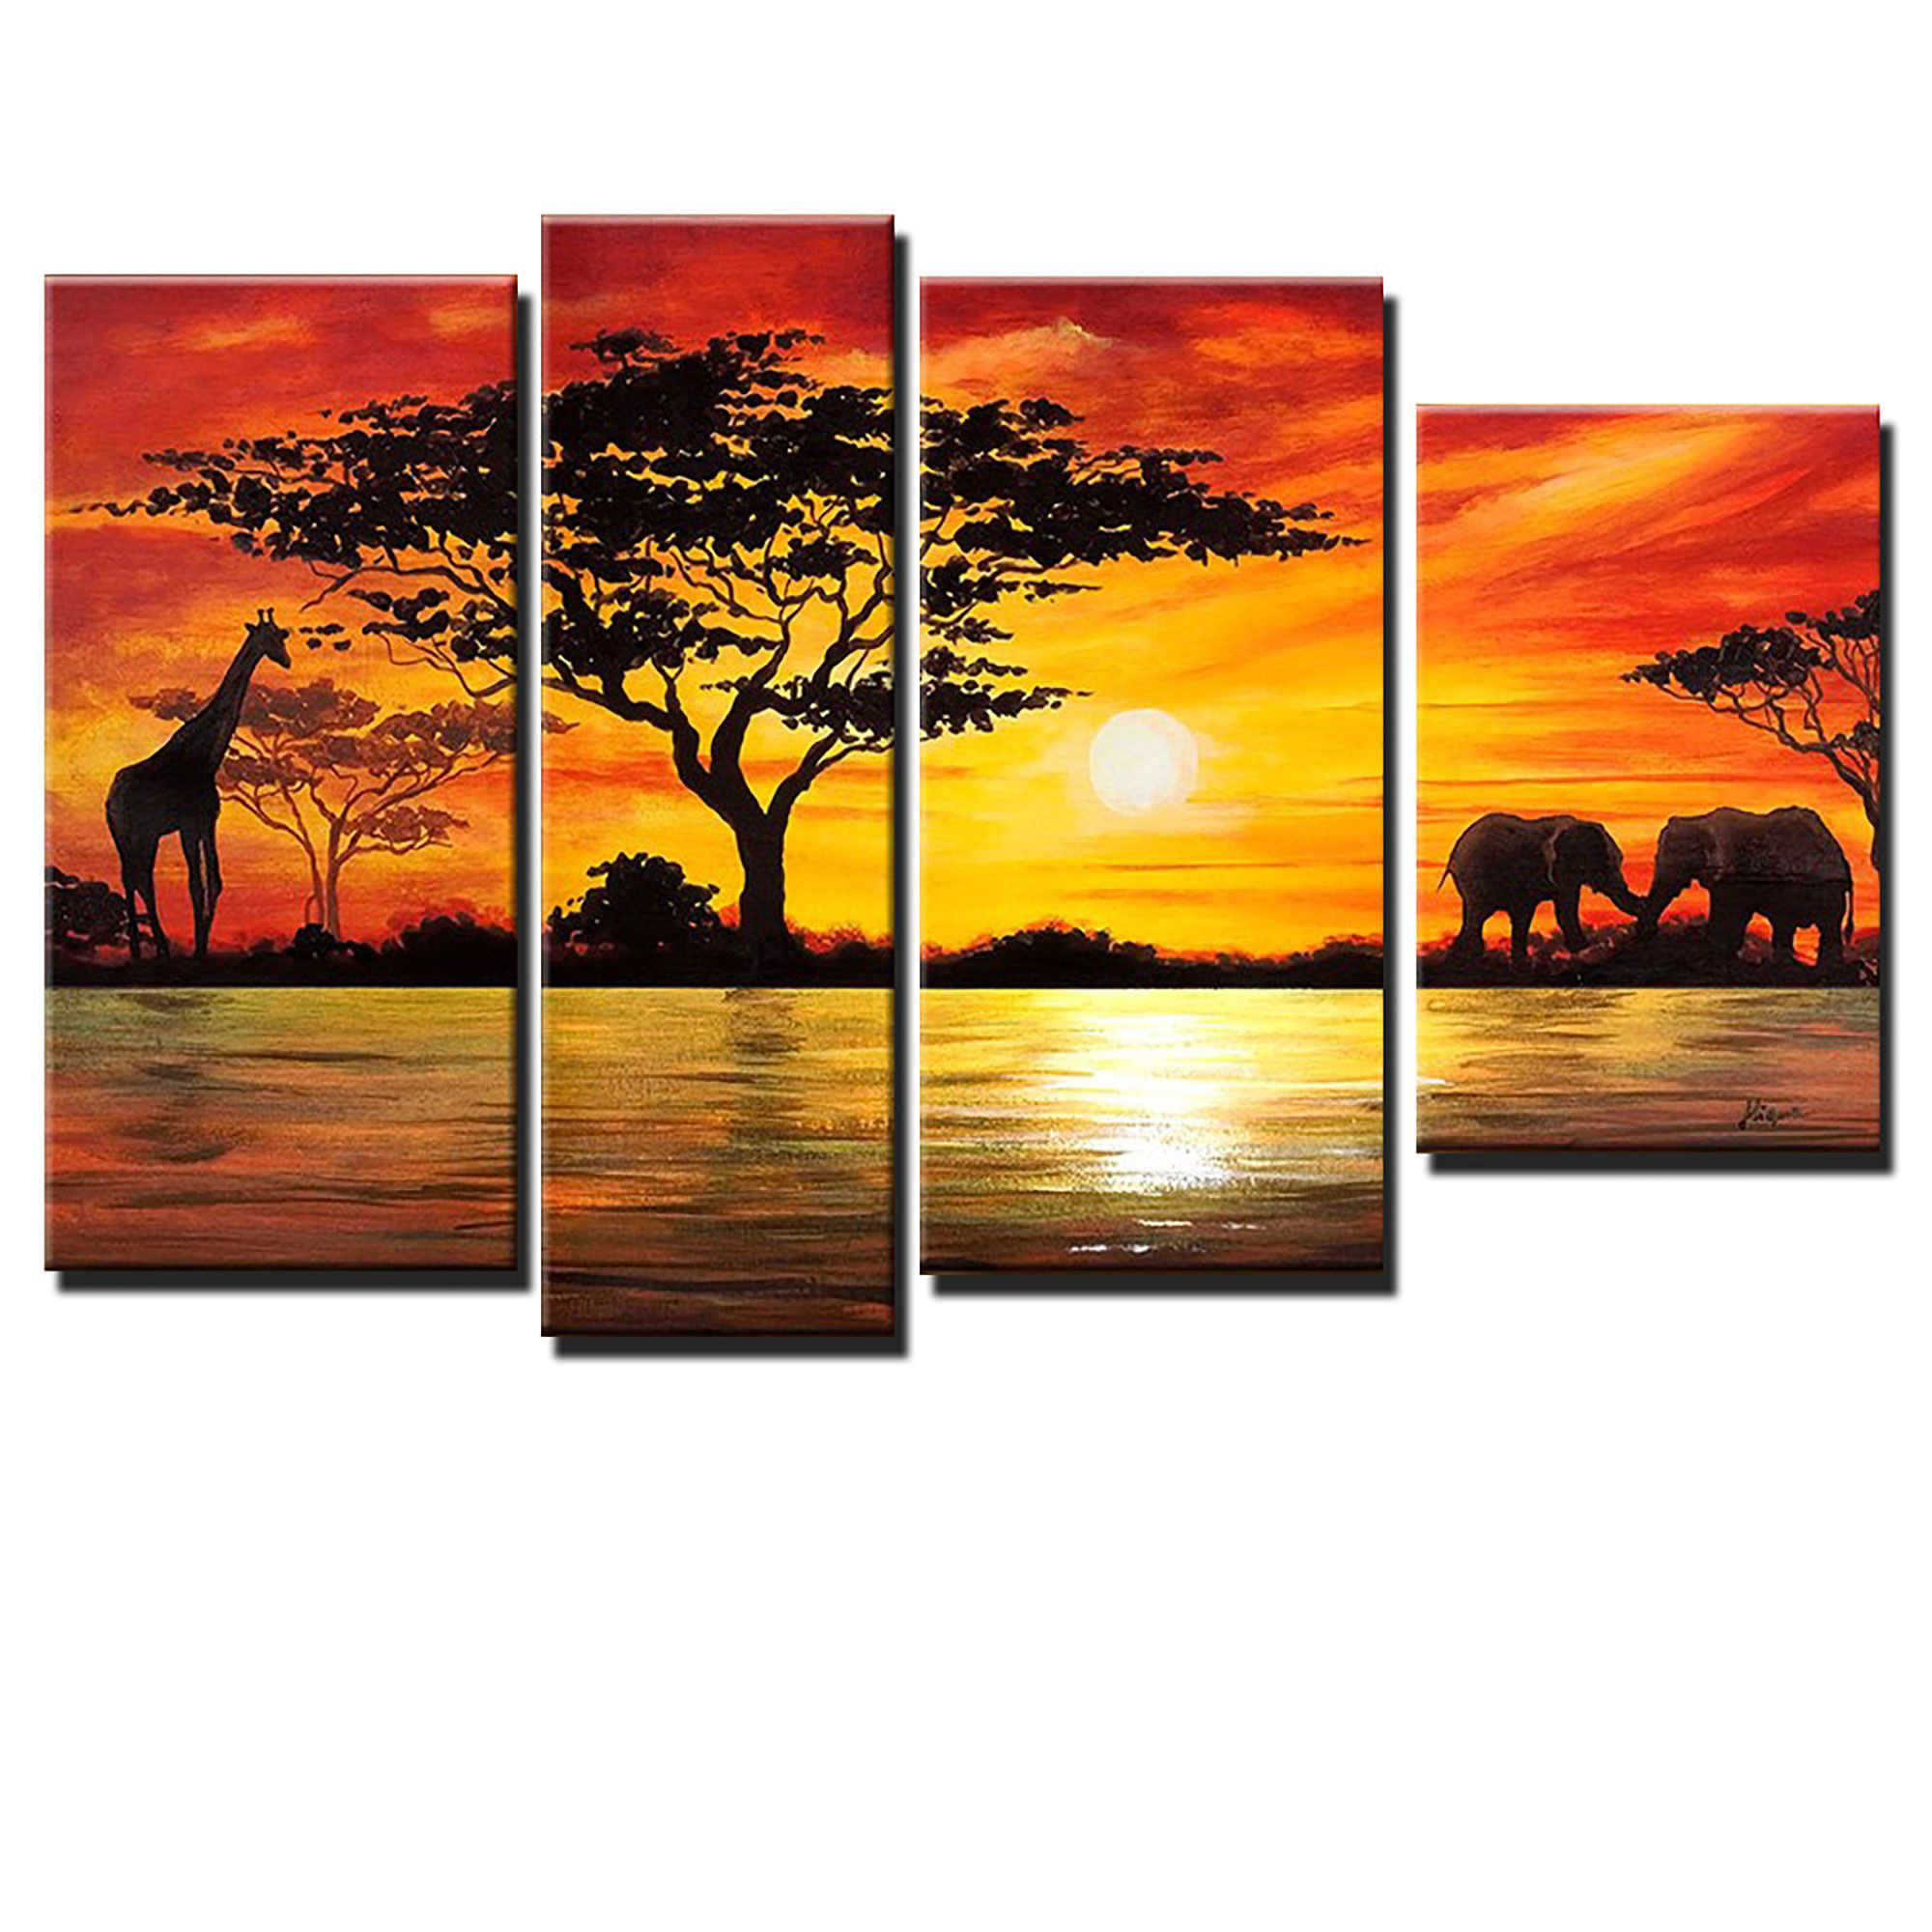 Beauty of Africa Canvas Wall Art Landscape Oil Painting